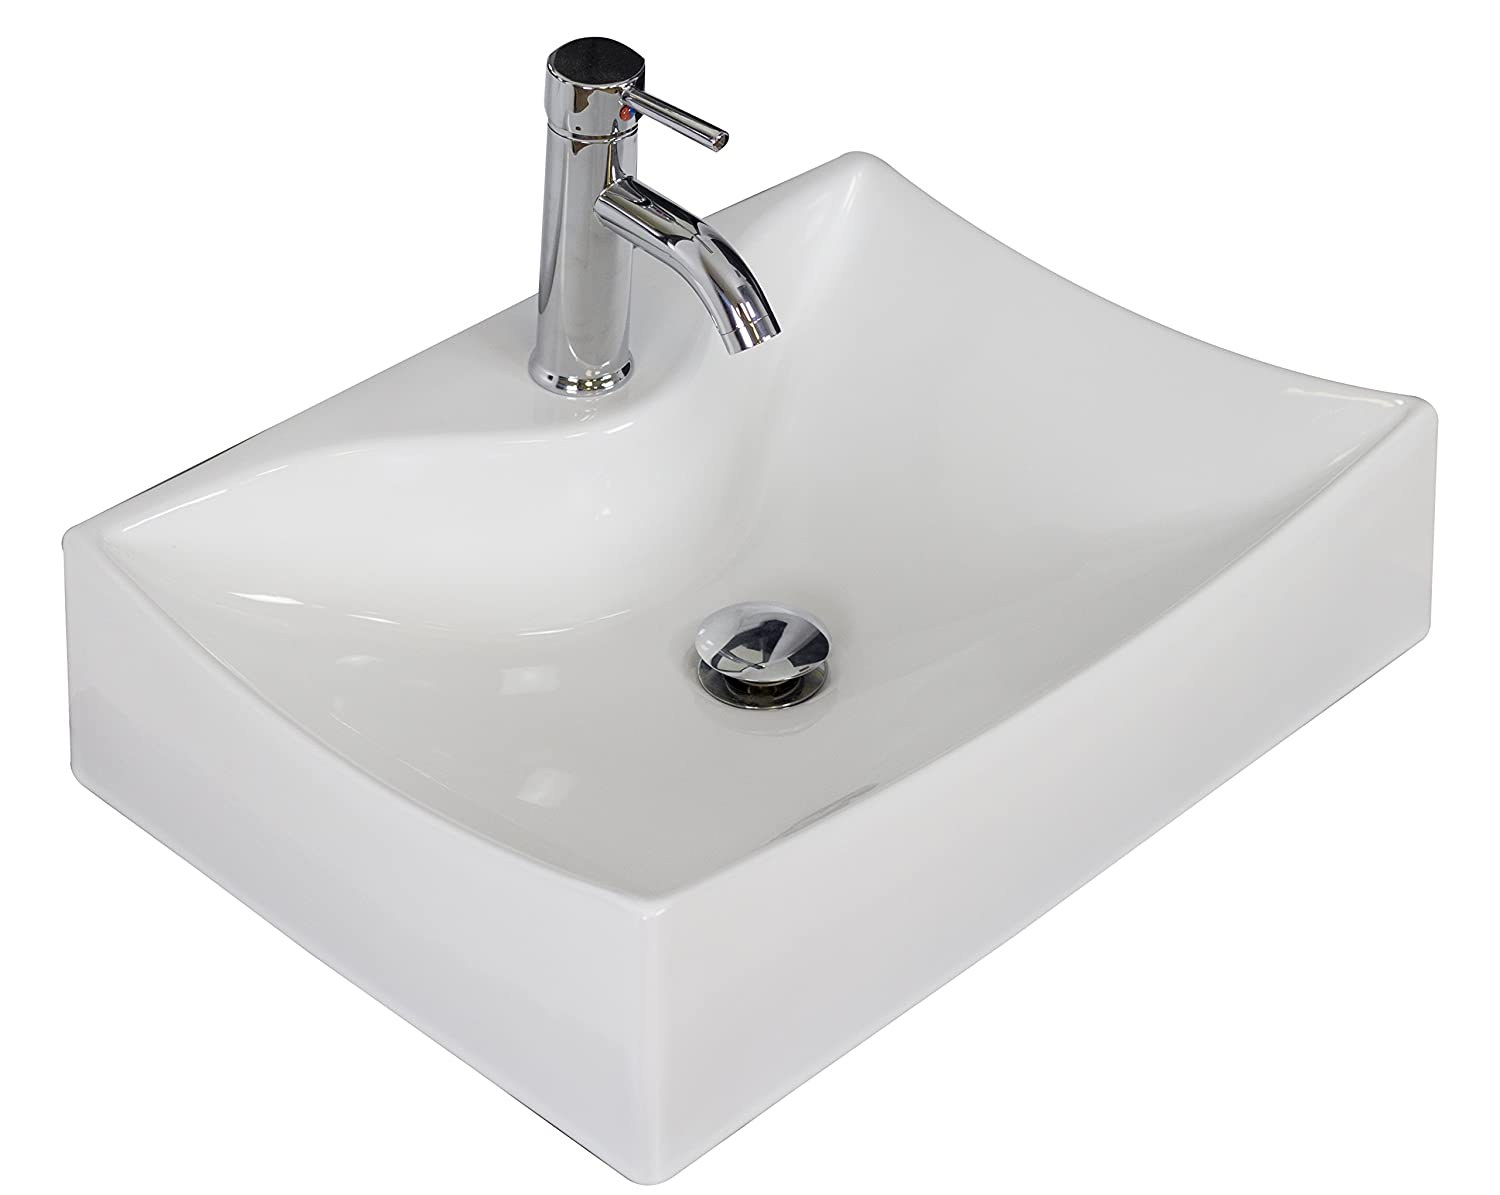 American Imaginations AI-7-1732 Above Counter Rectangle Vessel for Single Hole Faucet, 21.5-Inch x 16-Inch, White IMG Imports Inc.